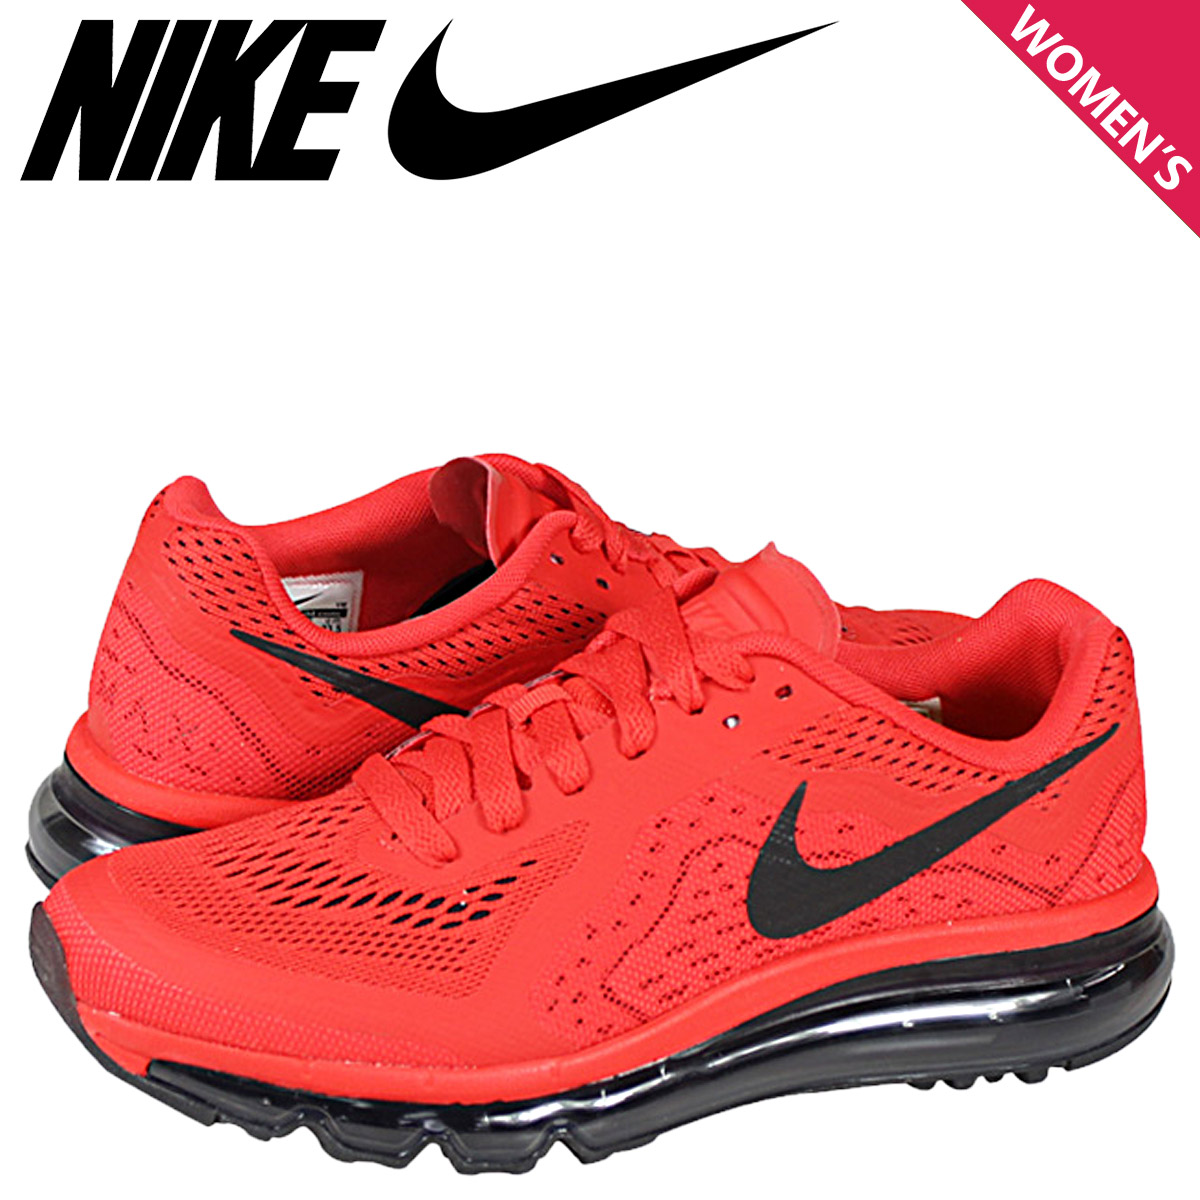 NIKE Kie Ney AMAX sneakers Lady's AIR MAX 2014 GS Air Max 2014 631,334 600 shoes red